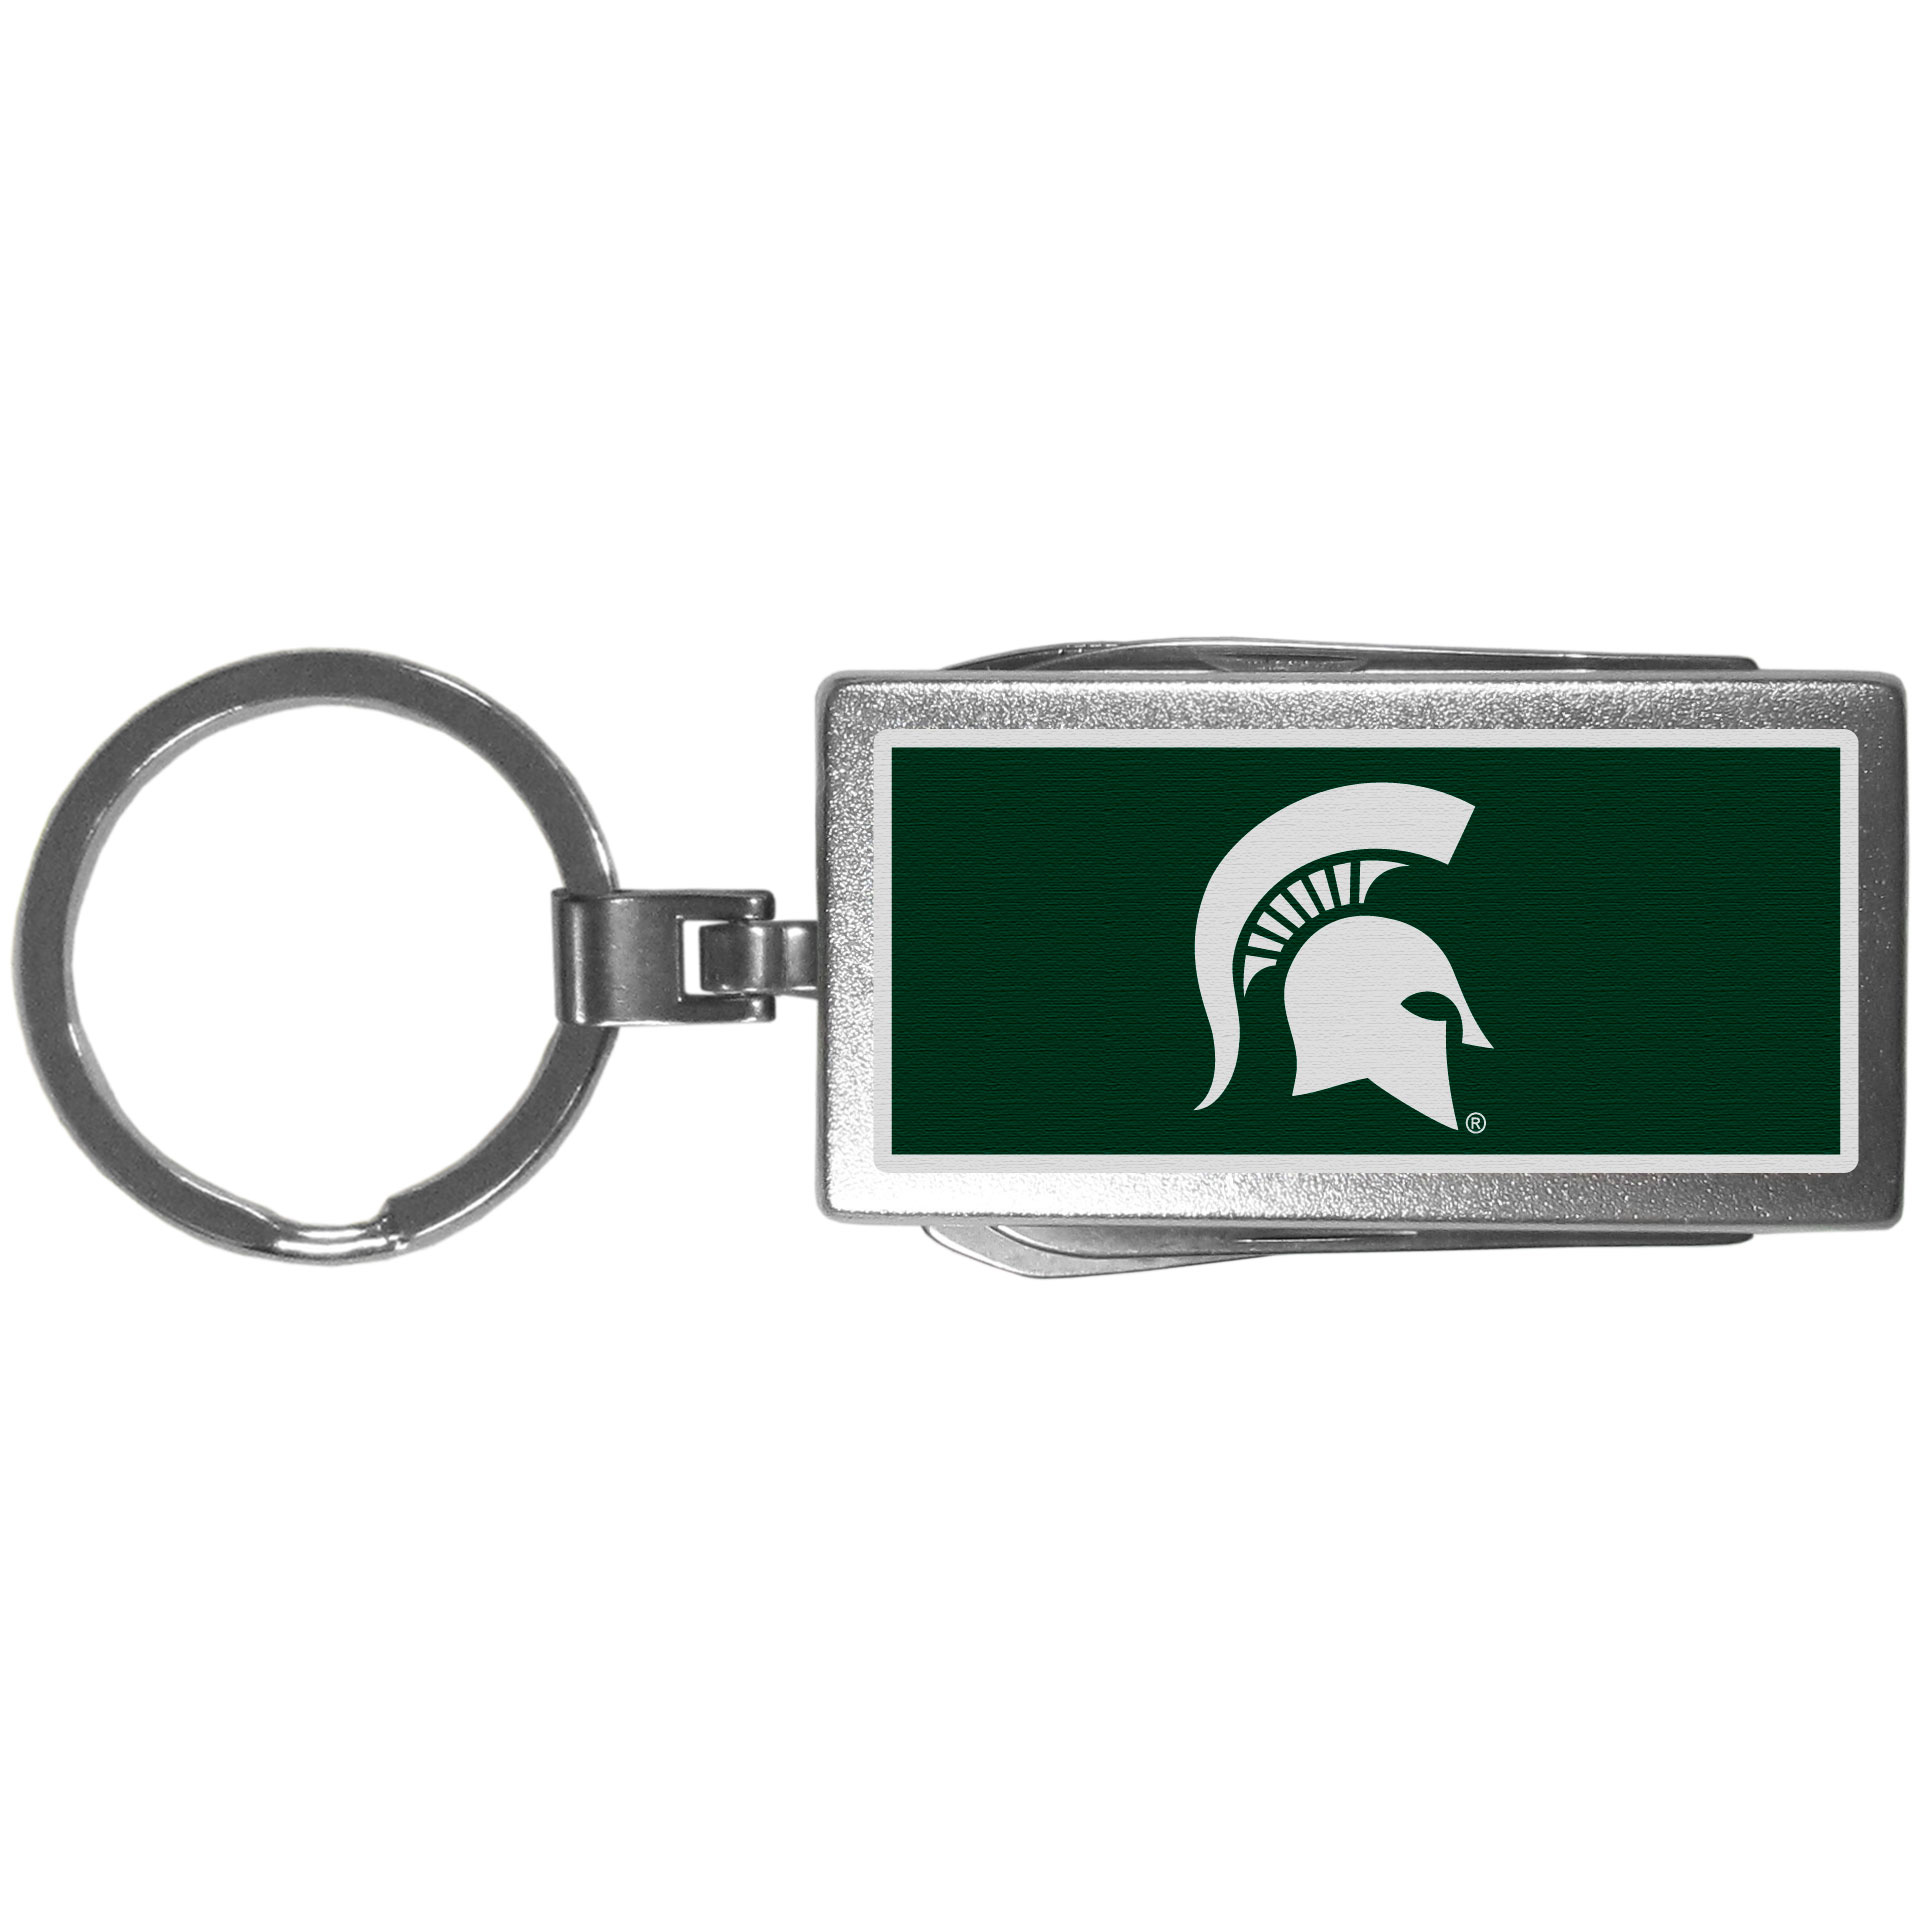 Michigan St. Spartans Multi-tool Key Chain, Logo - Be the hero at the tailgate, camping, or on a Friday night with your Michigan St. Spartans Multi-Tool Keychain which comes complete with bottle opener, scissors, knife, nail file and screw driver. Be it opening a package or a beverage Siskiyou's Multi-Tool Keychain goes wherever your keys do. The keychain hangs at 4 inches long when closed.